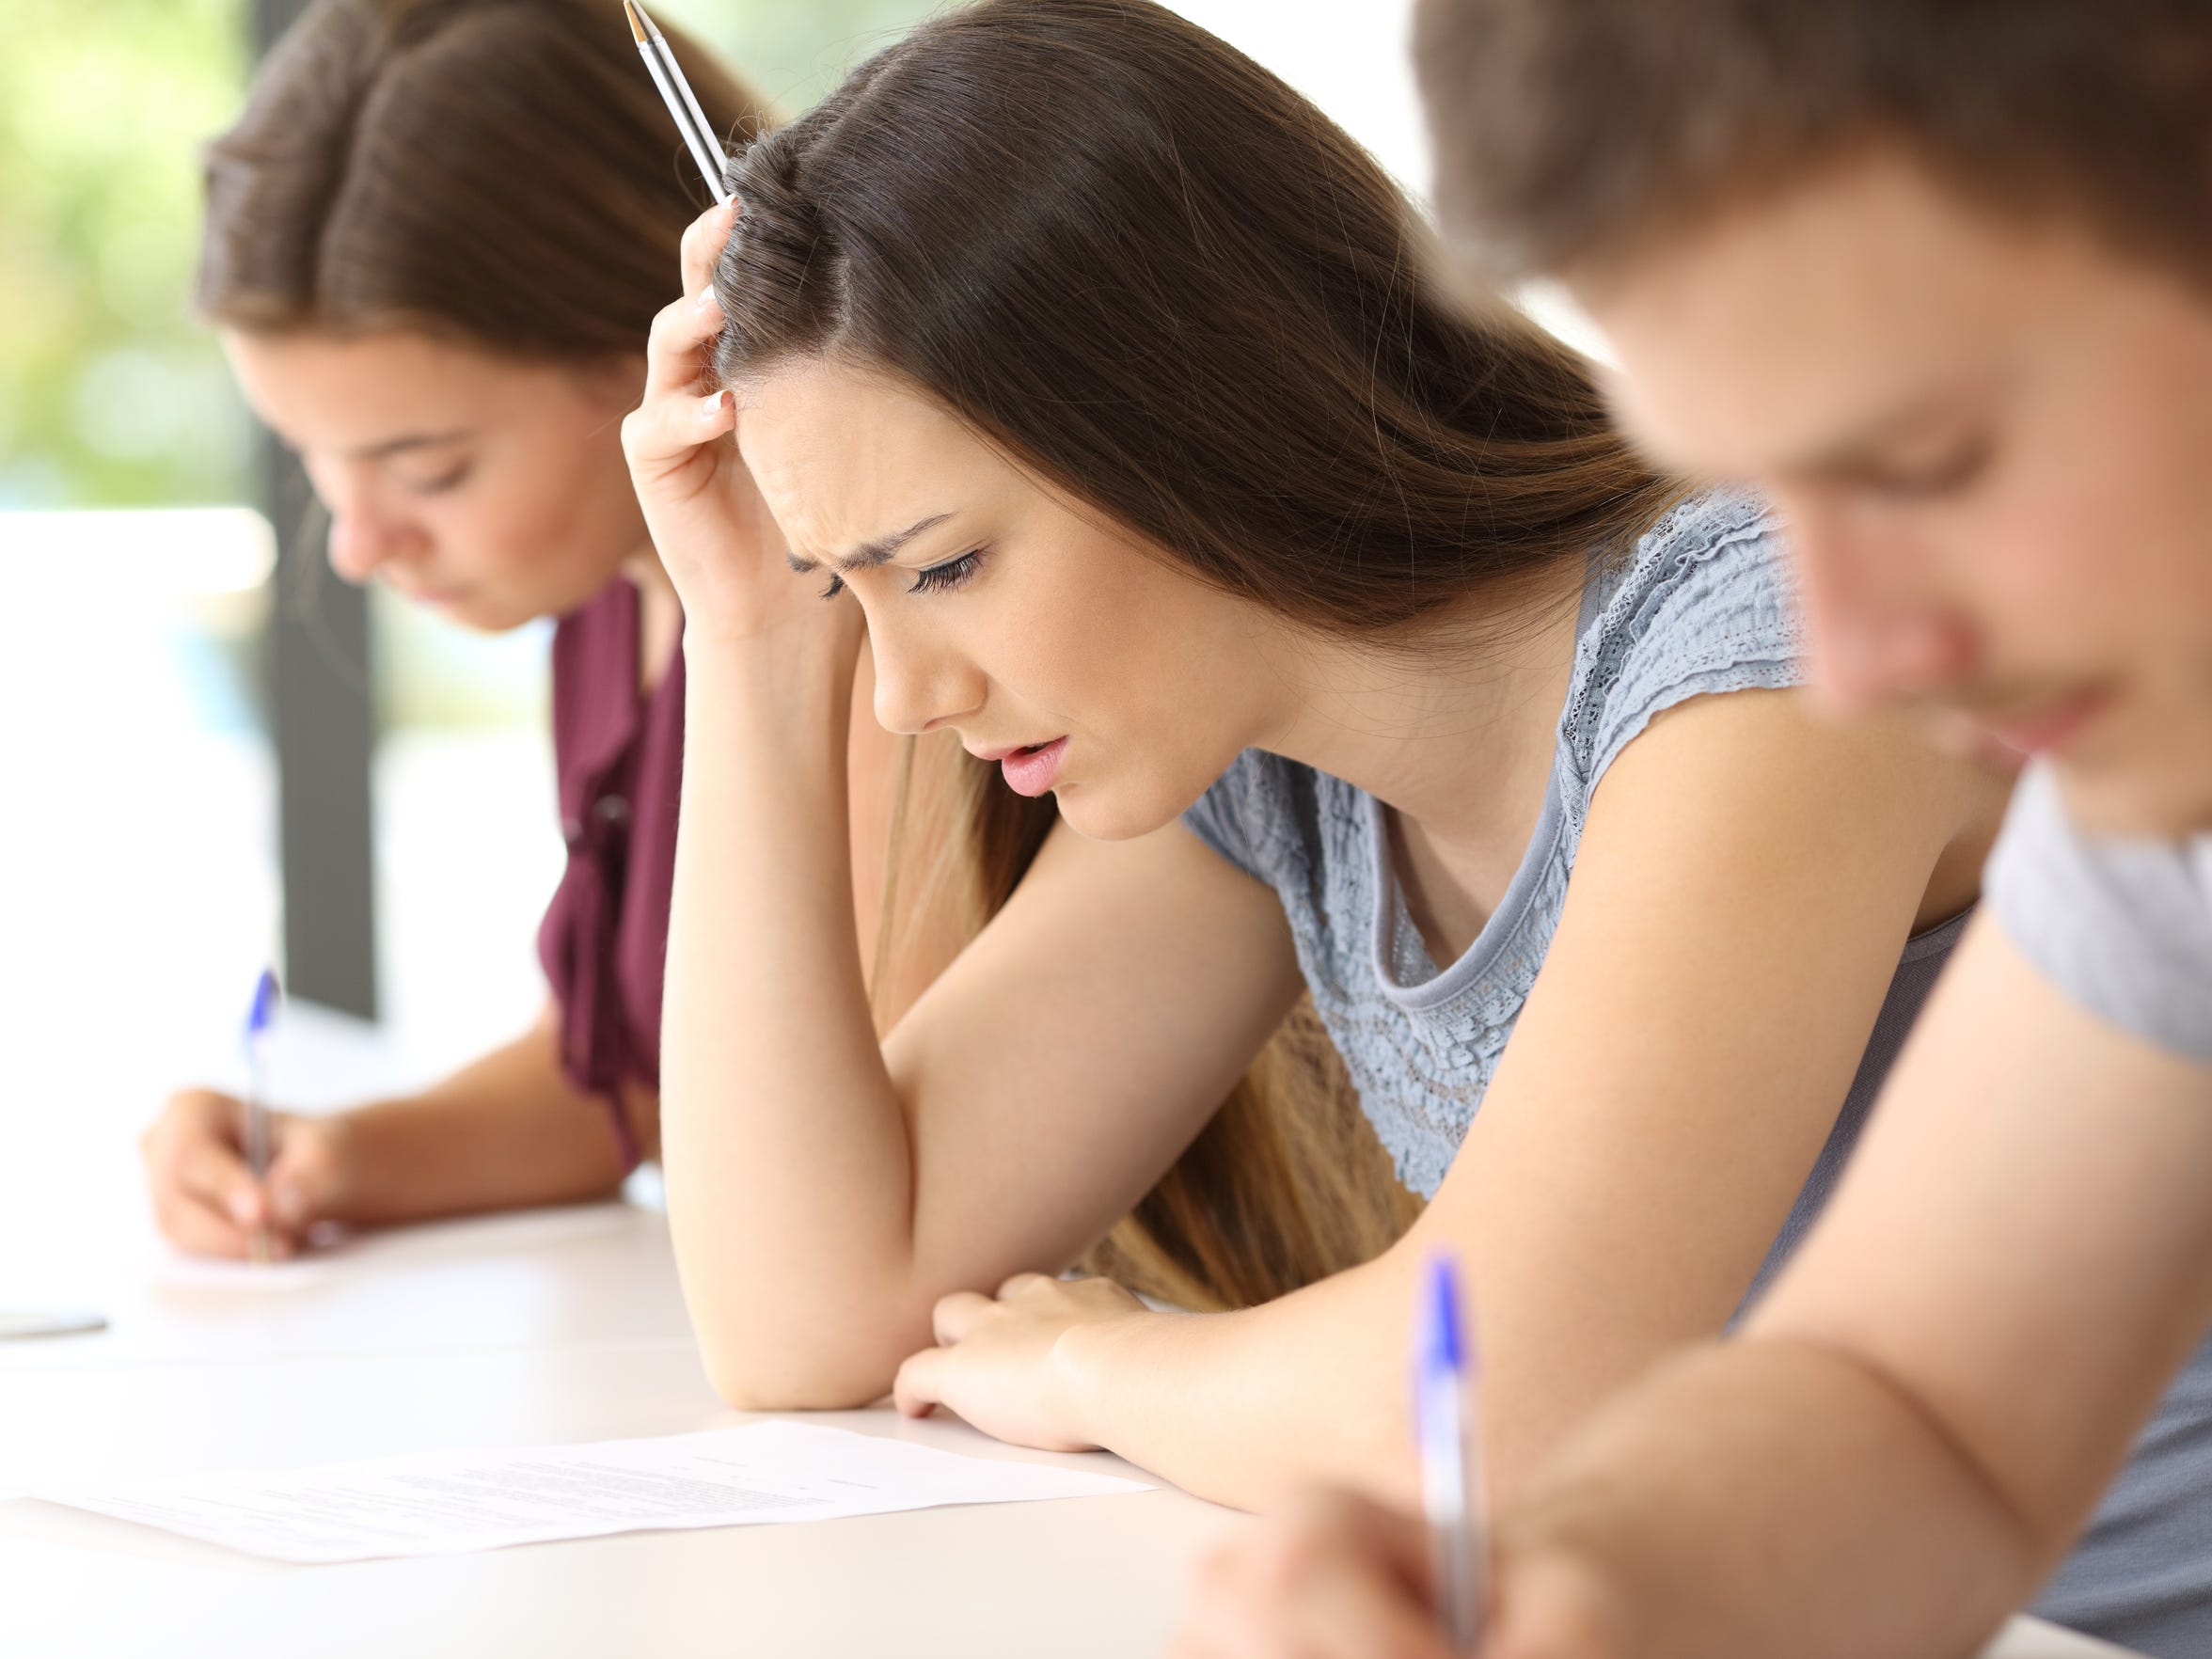 According to the American Test Anxieties Association, about 16 to 20 percent of students have high test anxiety, with another 18 percent troubled by moderately high test anxiety.